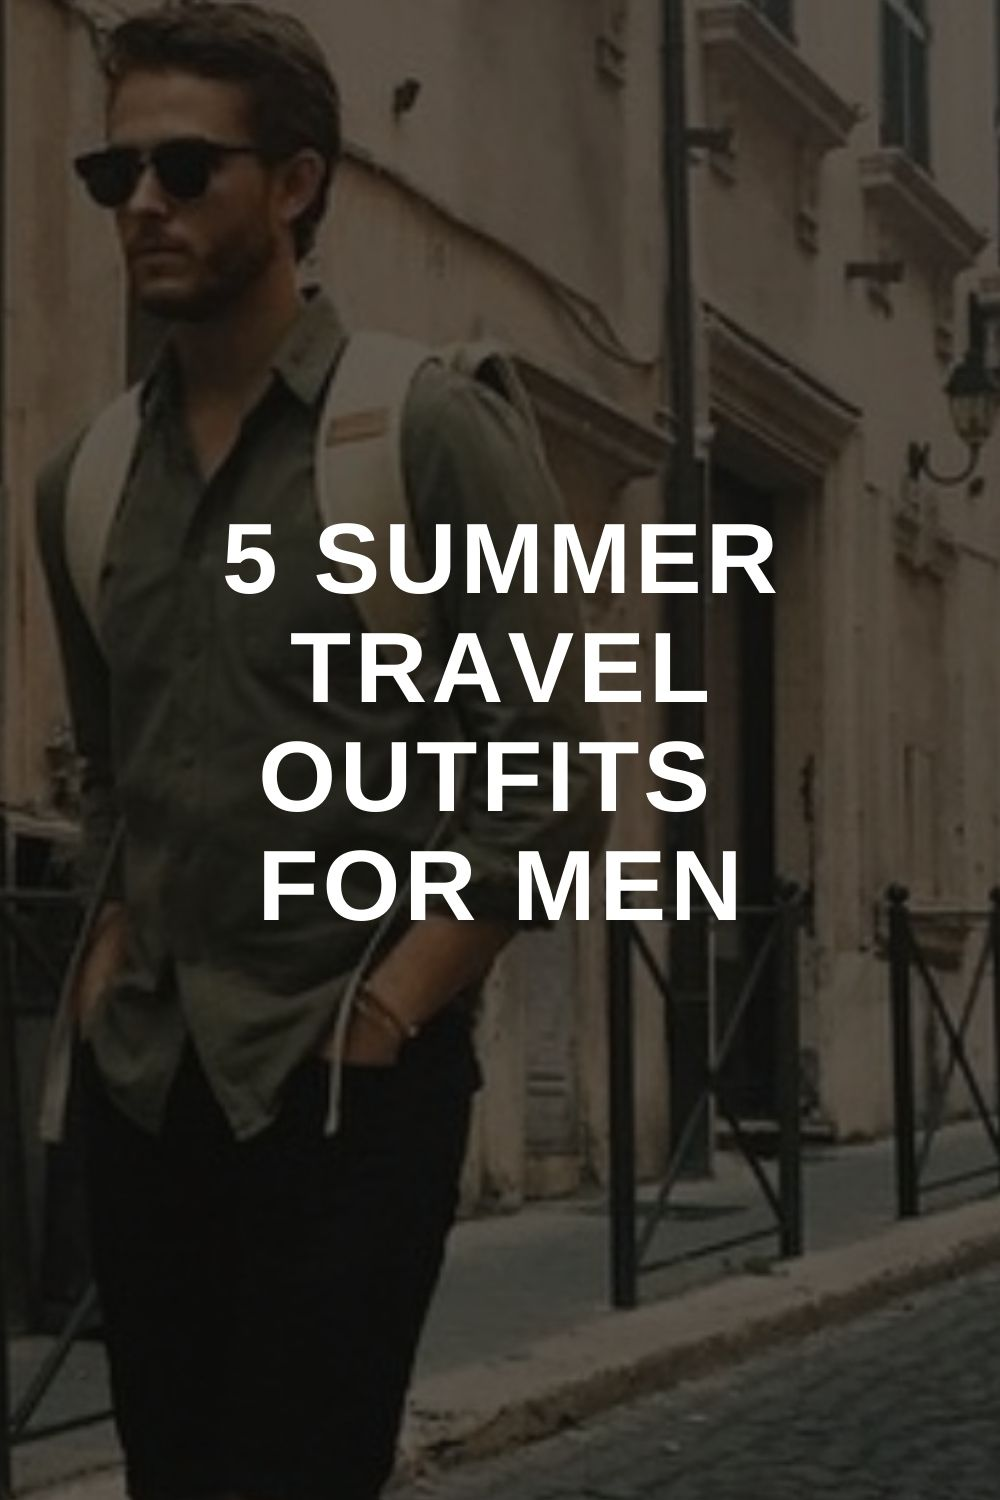 5 Summer Travel Outfits For Men